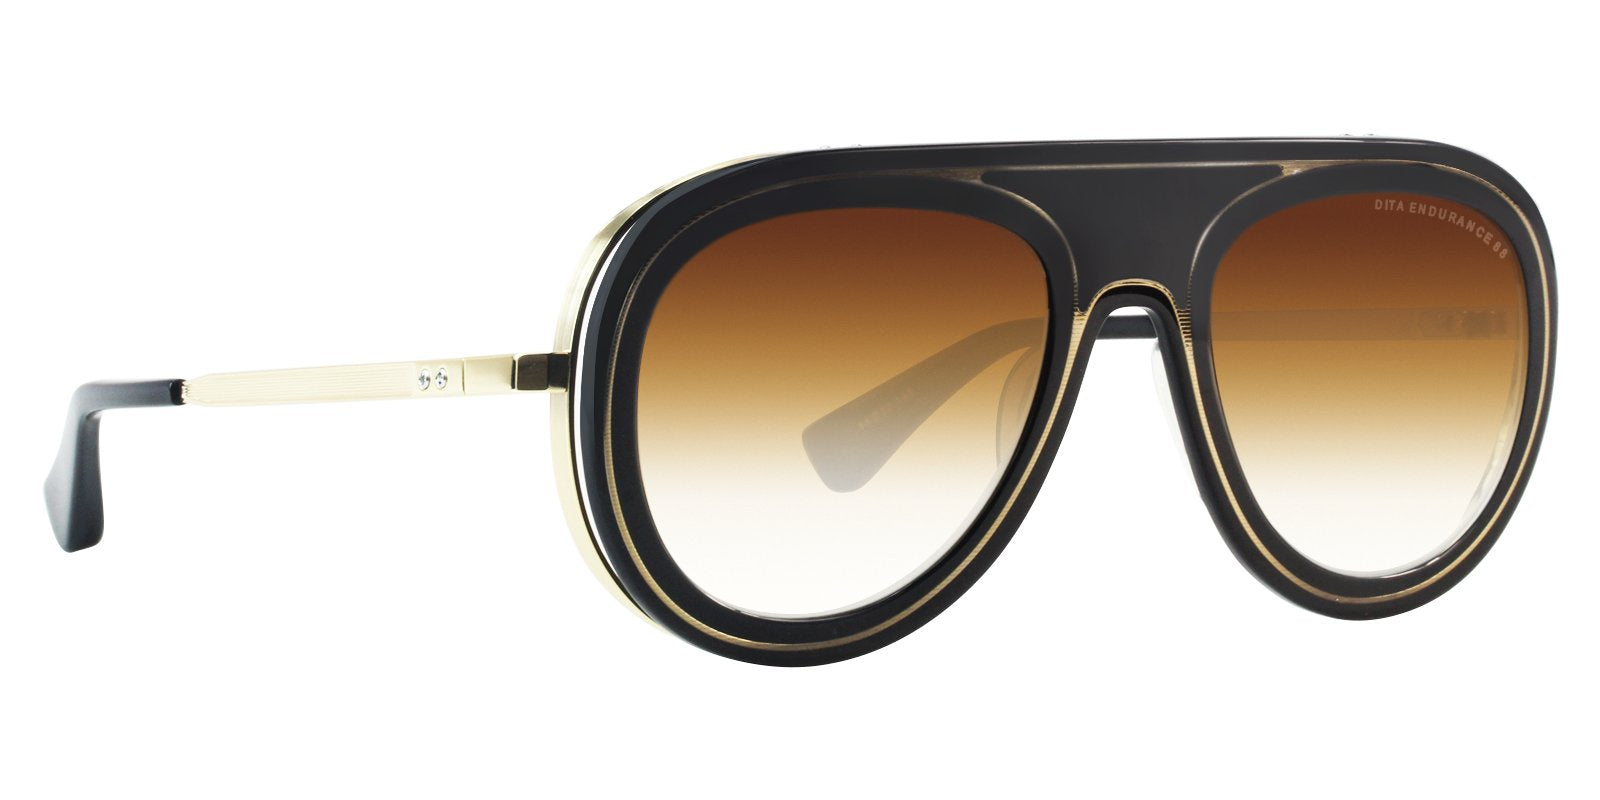 Dita - Endurance 88 Black Gold Aviator Unisex Sunglasses - 55mm-Sunglasses-Designer Eyes